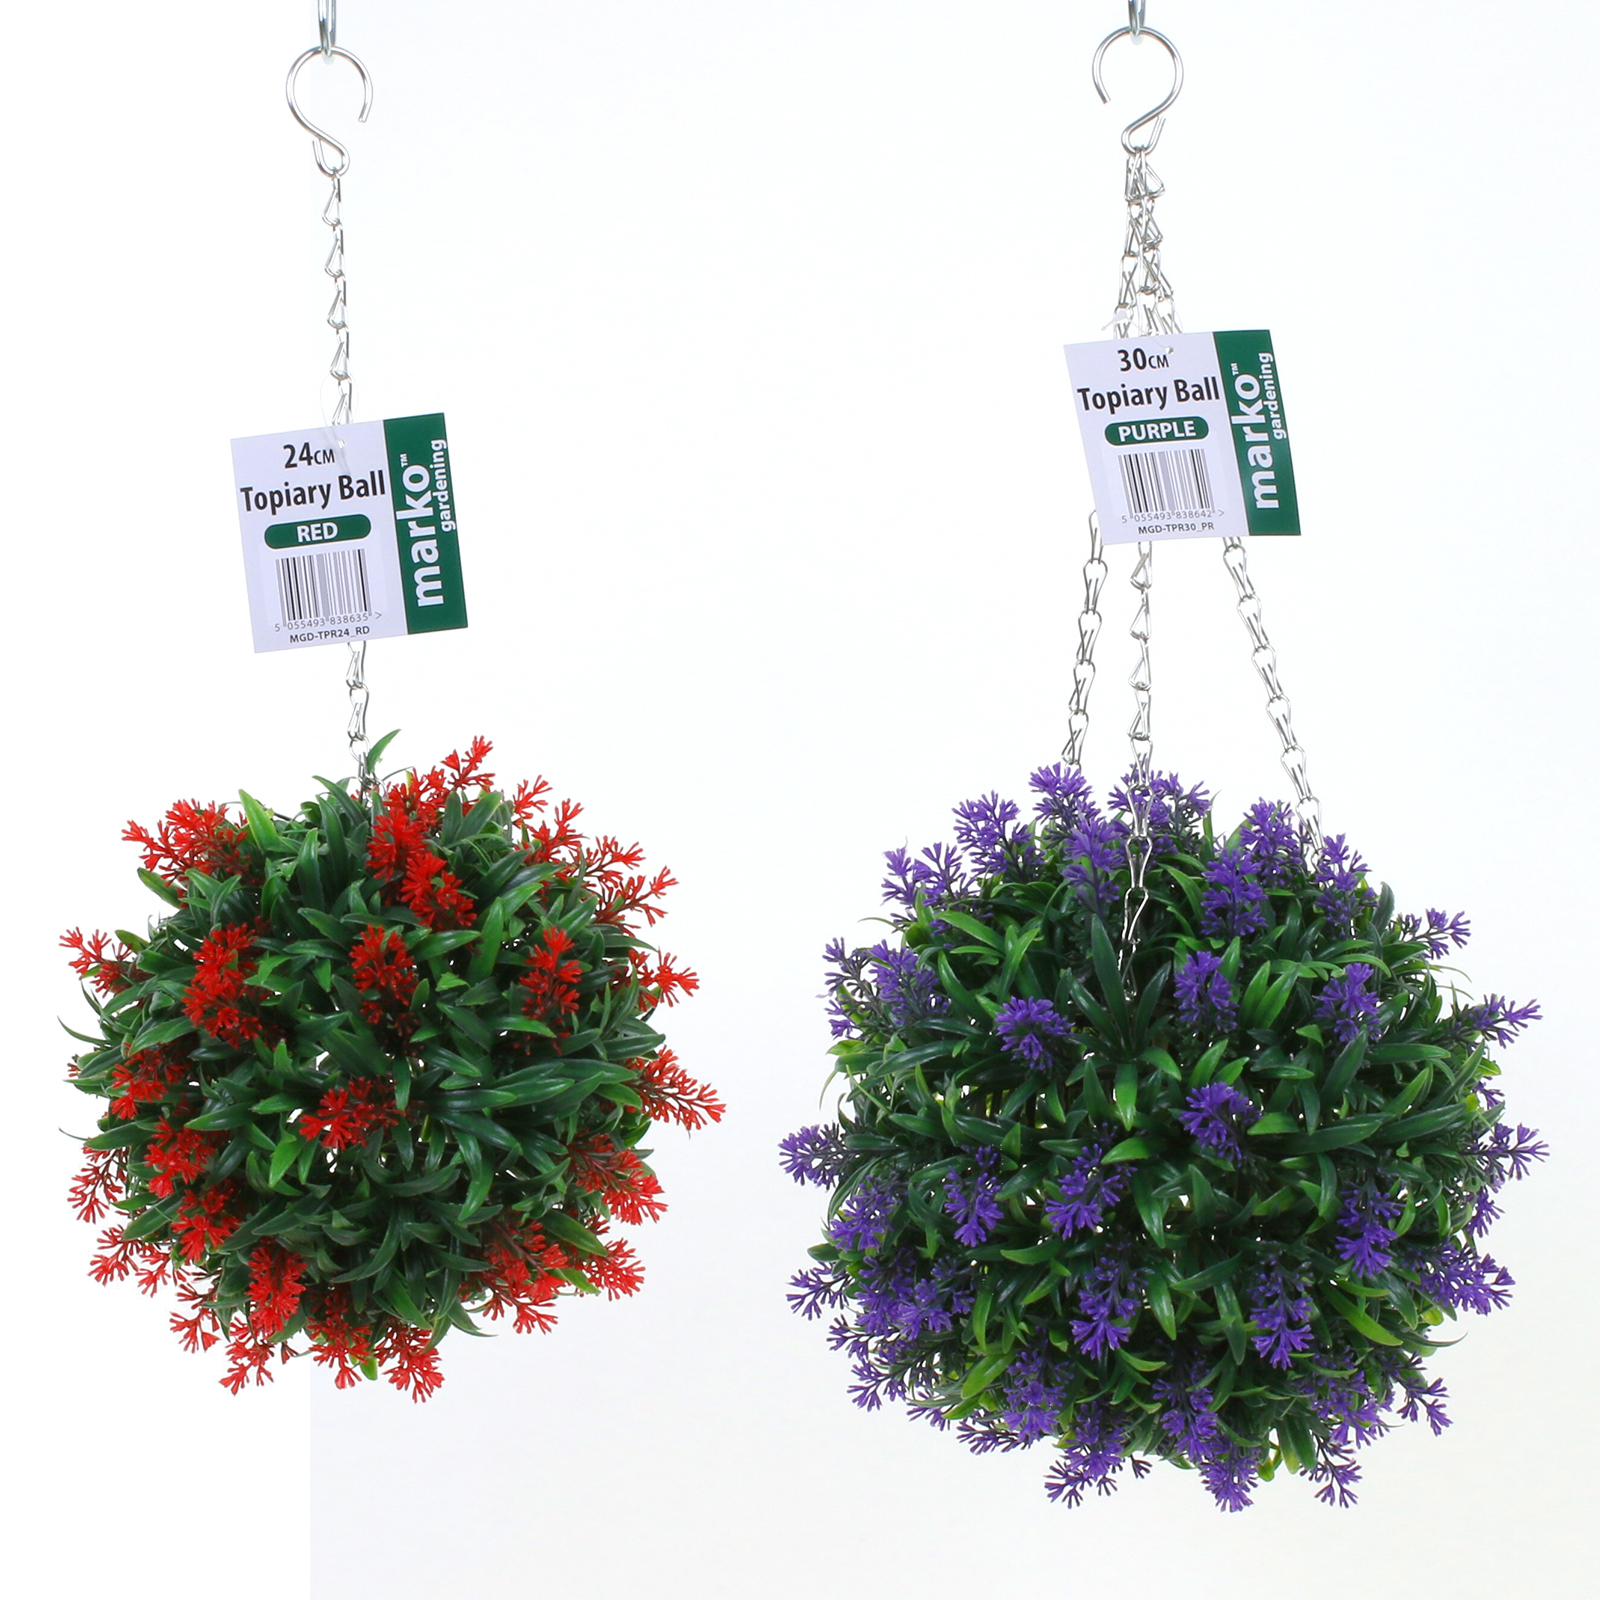 Plastic Hanging Baskets For Plants: Lavender Topiary Ball Buxus Artificial Flower Plant